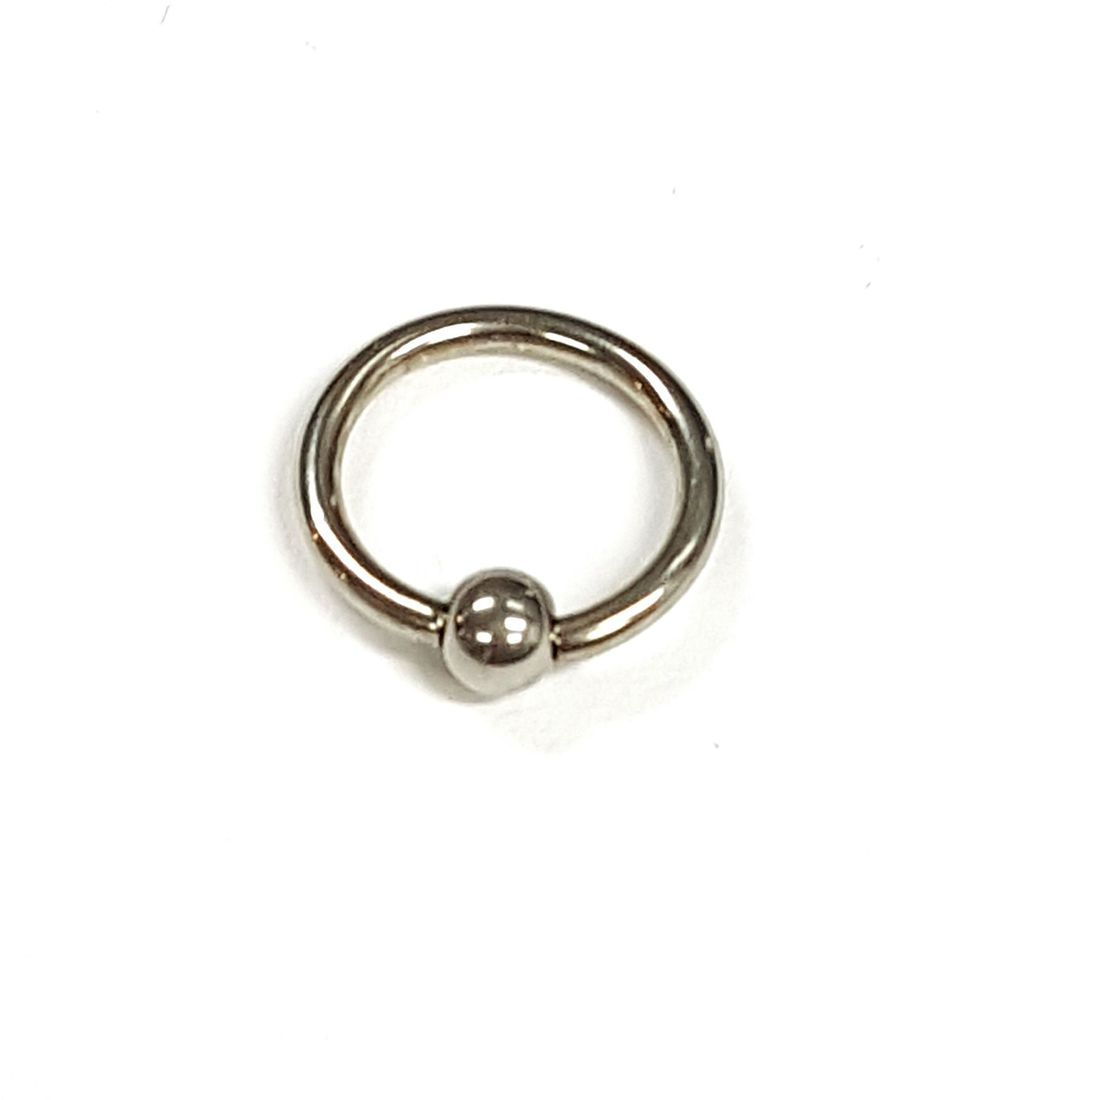 1.2mm x 10mm Silver Ball Closure Ringavailable at kazbah online or our Leicester City Centre Store